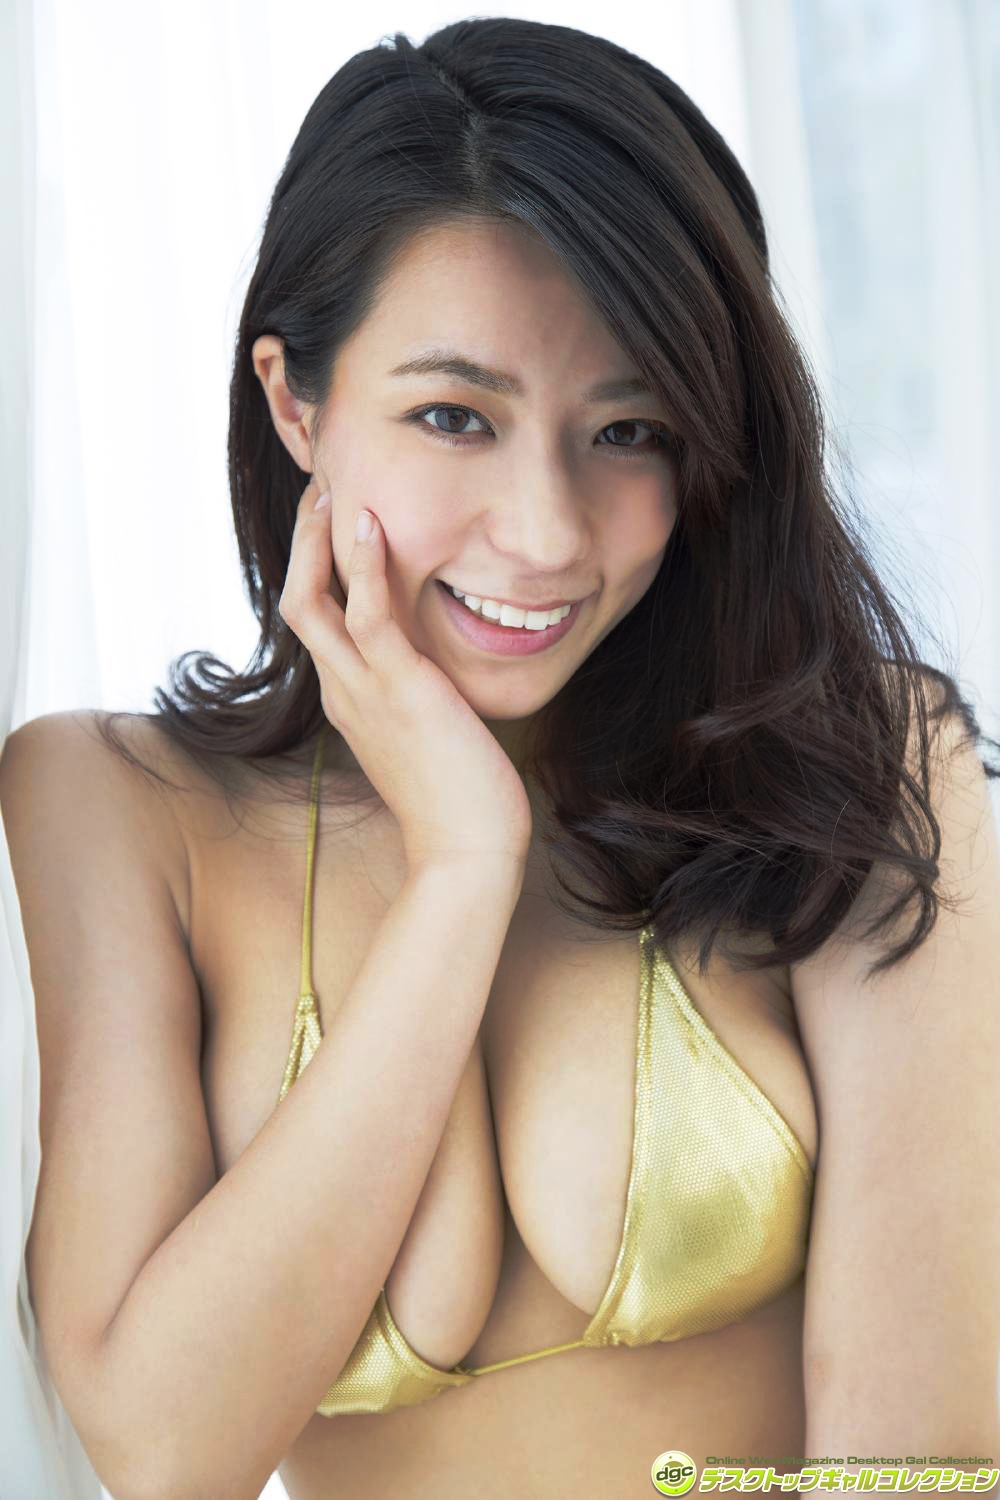 Japanese-Gravure-model-Mayu-Koseta-nude-013-from-sexvcl.net_ Japanese Gravure model Mayu Koseta nude sexy photos leaked